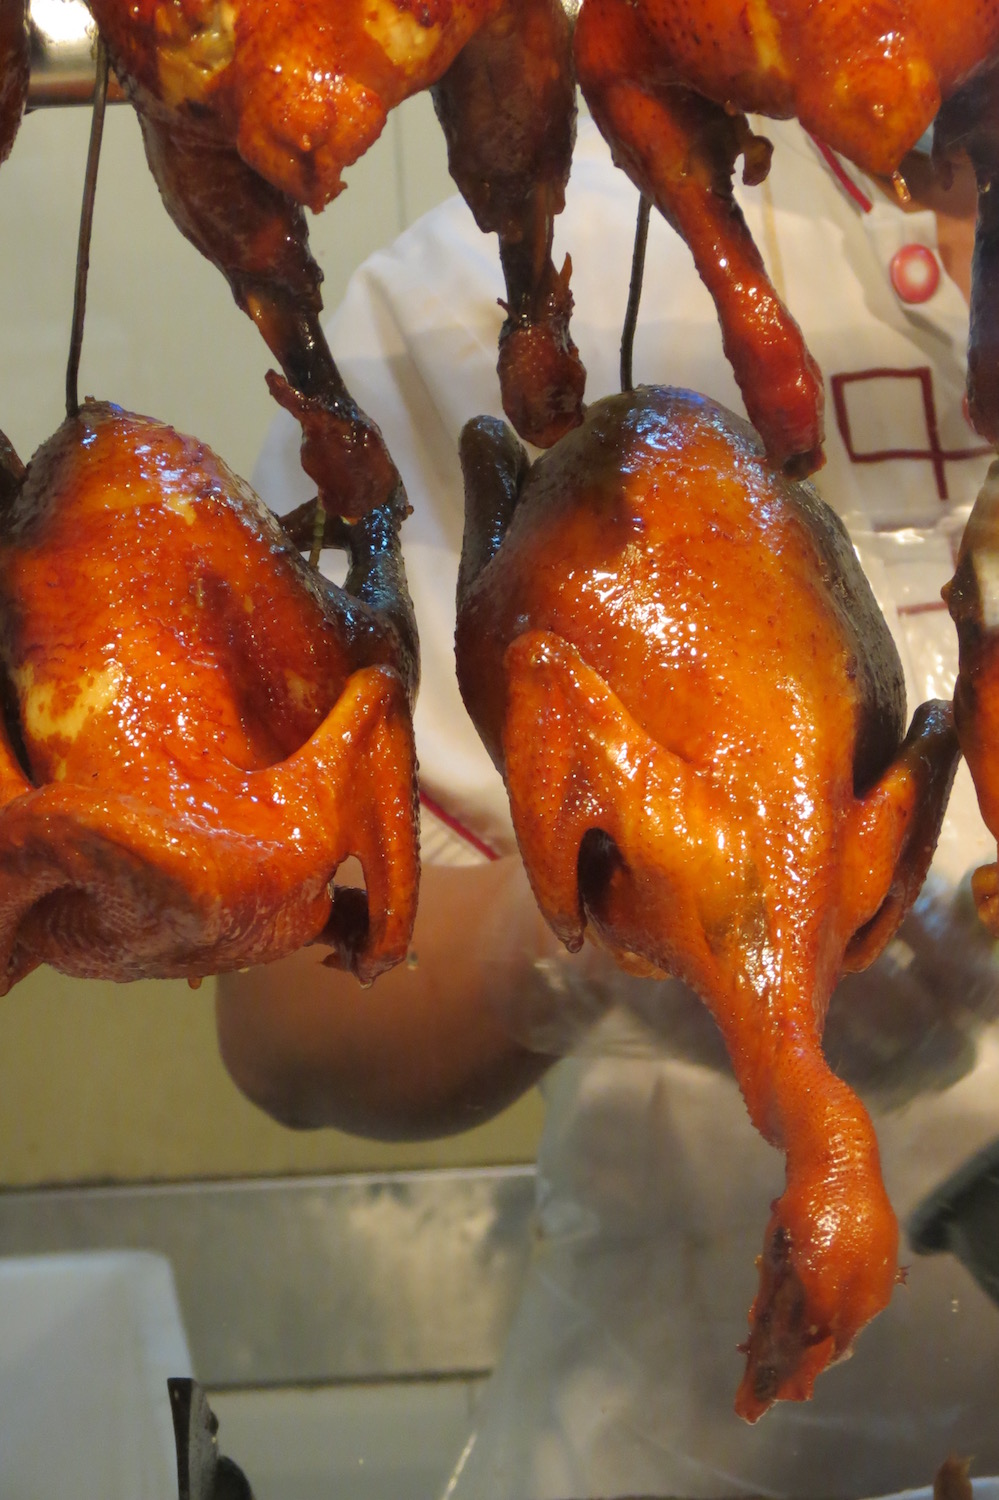 Roasted chickens and ducks in a shop window in Guangzhou's Enning Road Market